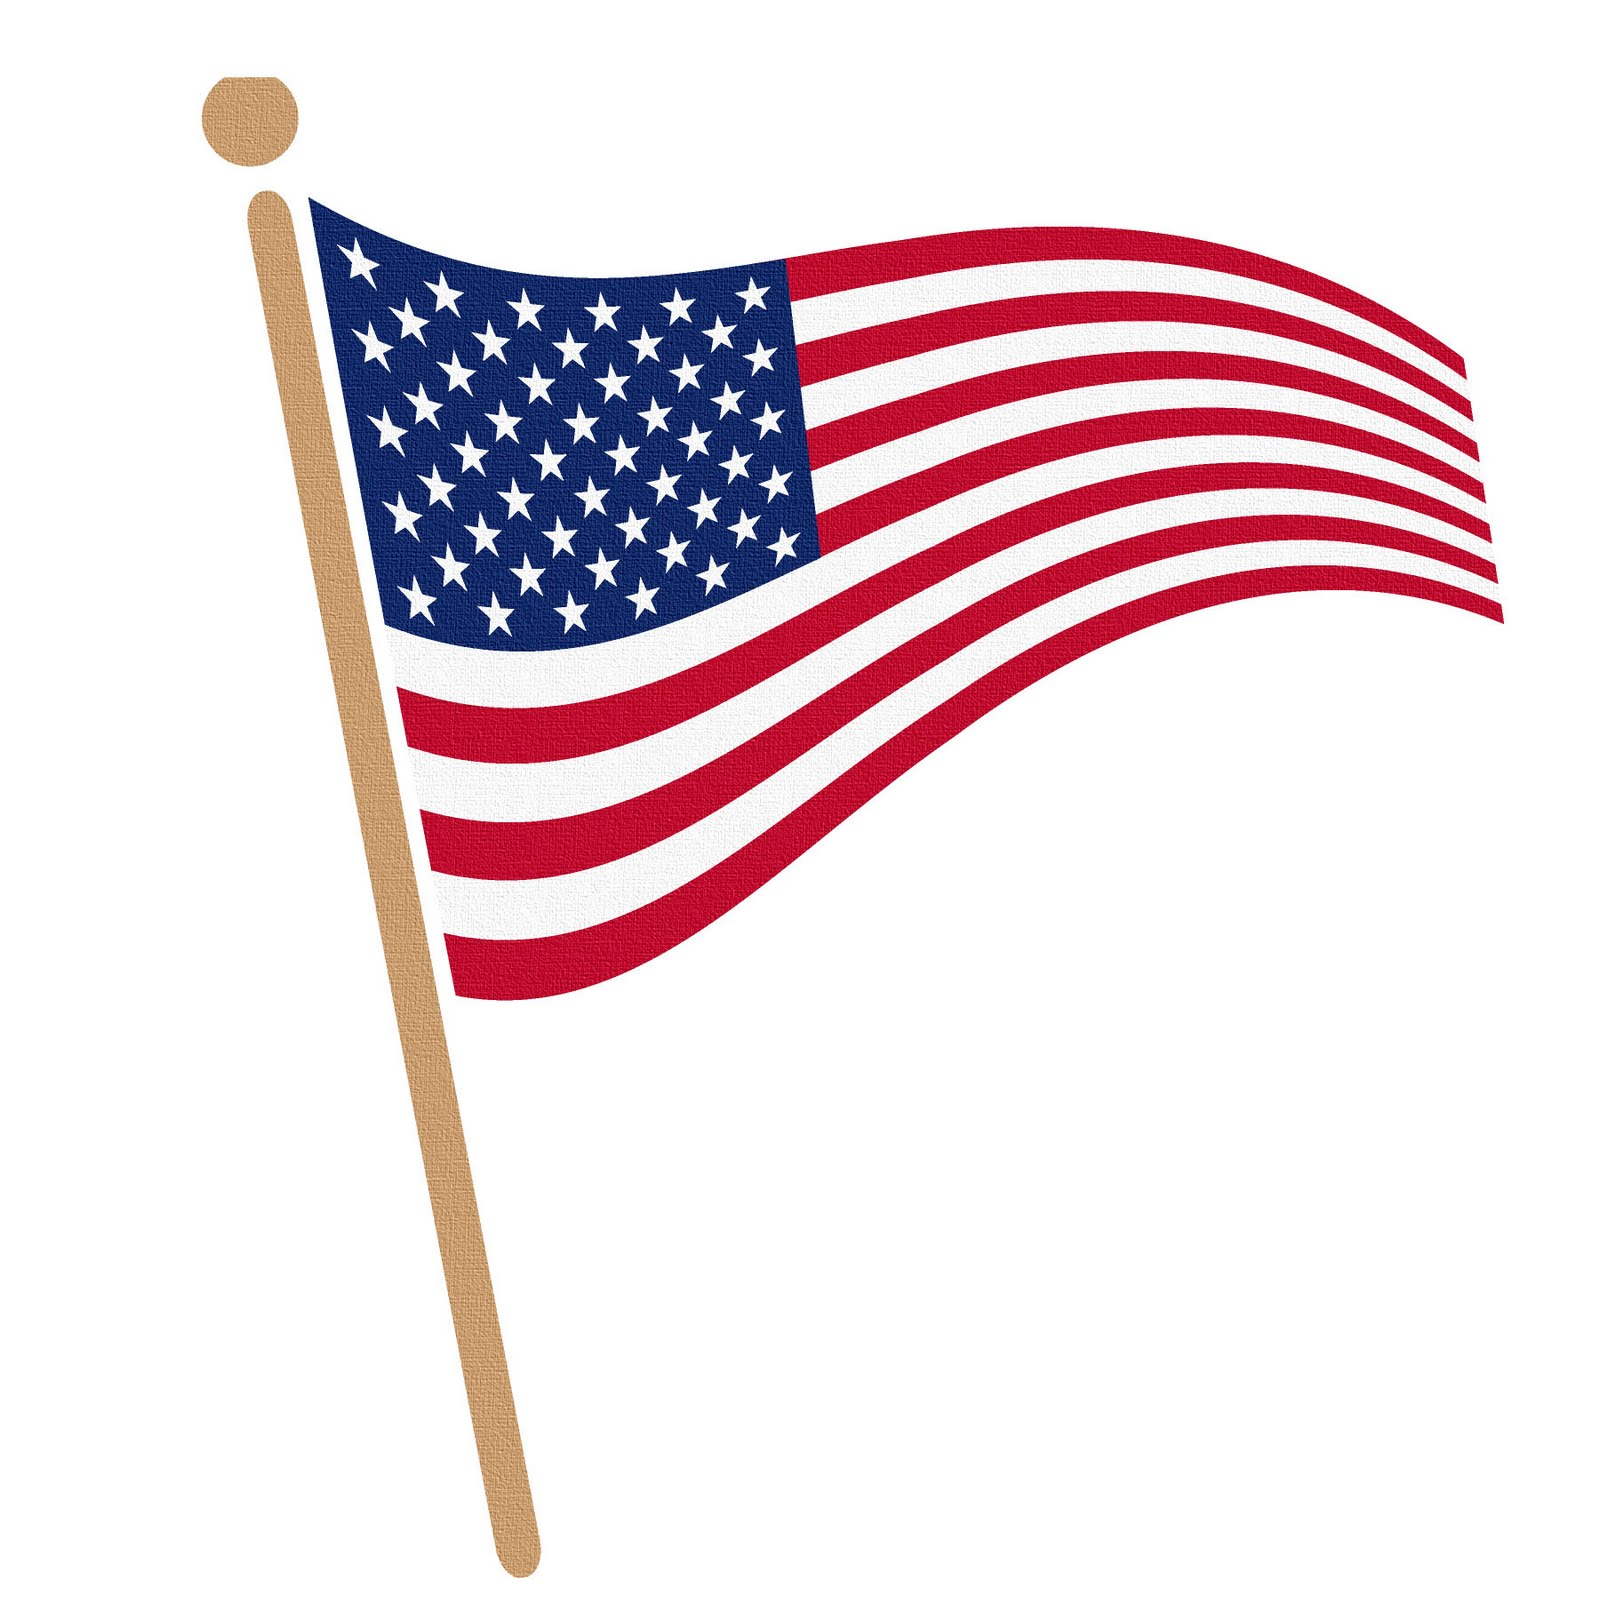 1600x1600 Free American Flags Clipart 3 Cliparting